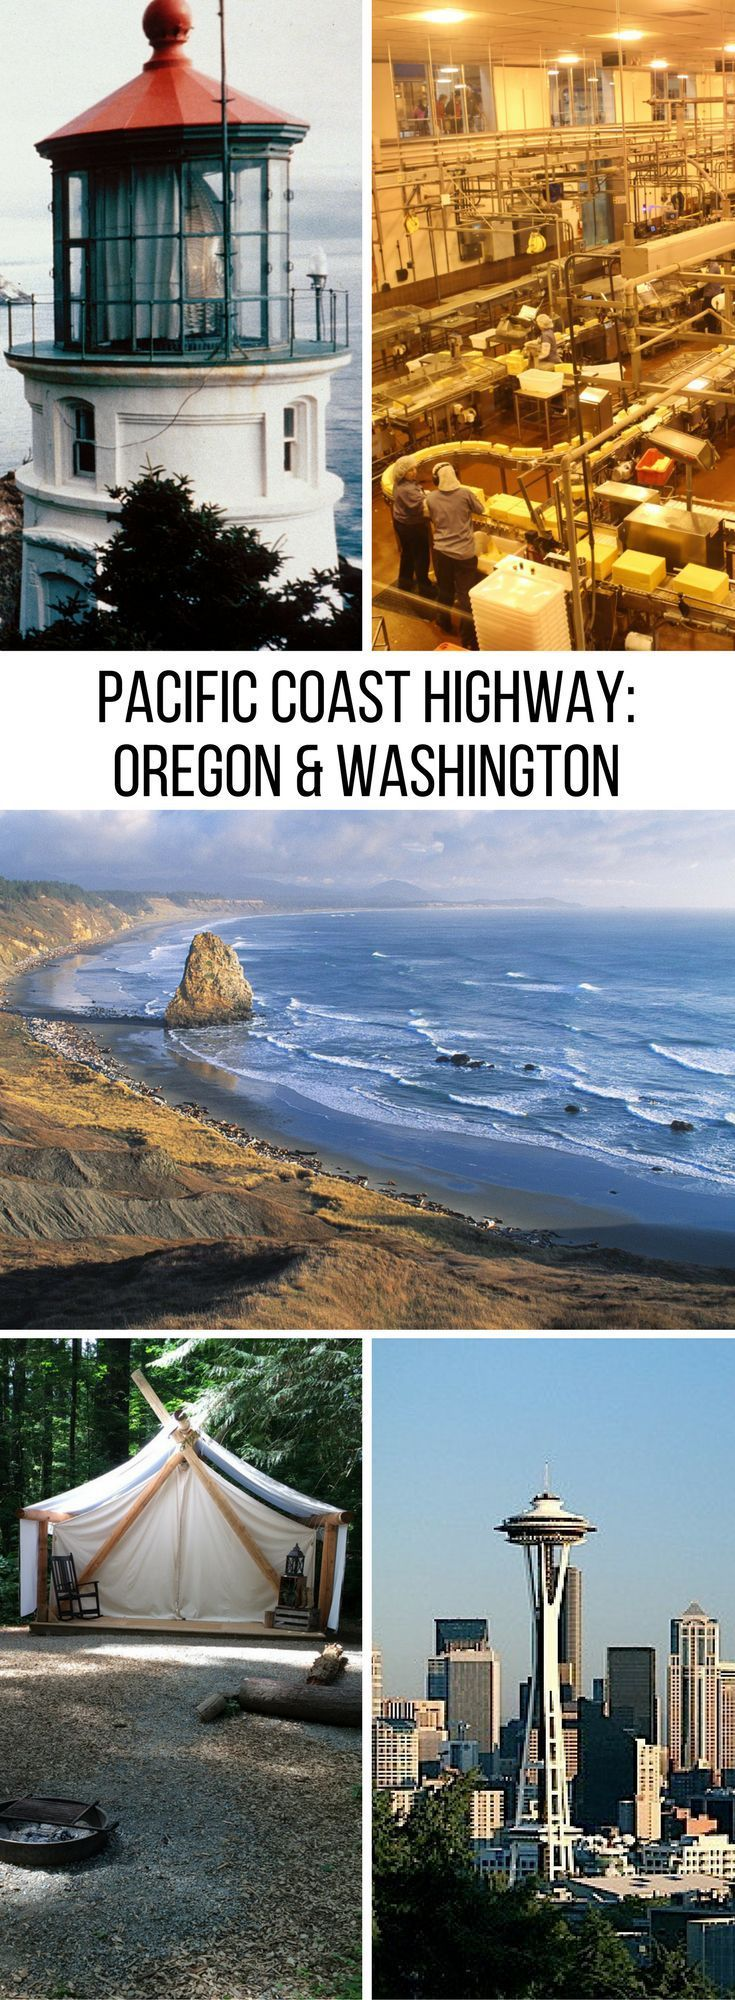 Pacific Coast Highway Oregon Washington 243